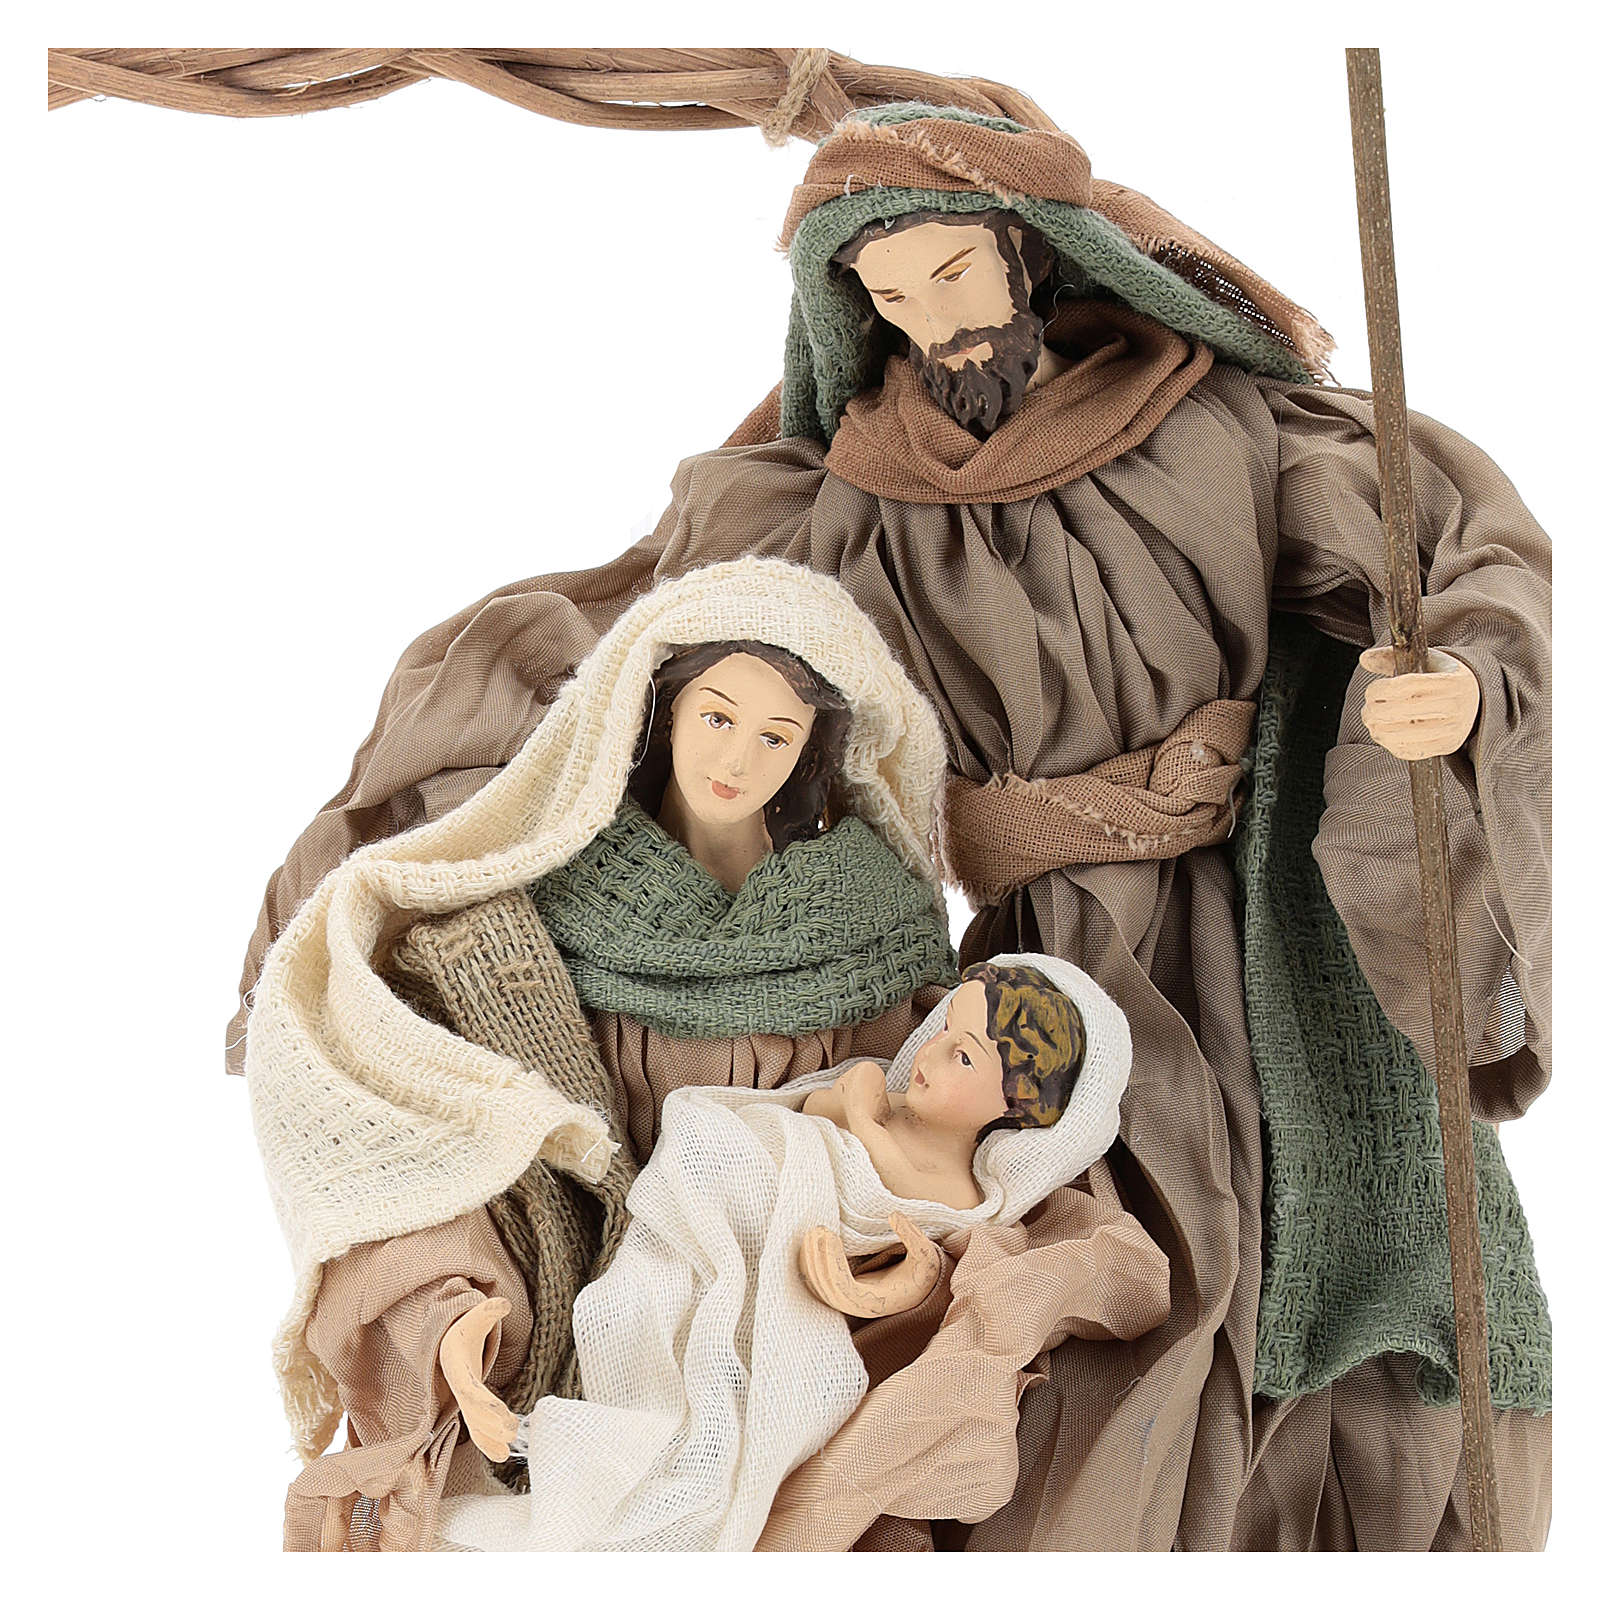 Crown 30 cm with Holy Family 24 cm, in terracotta Shabby Chic 3